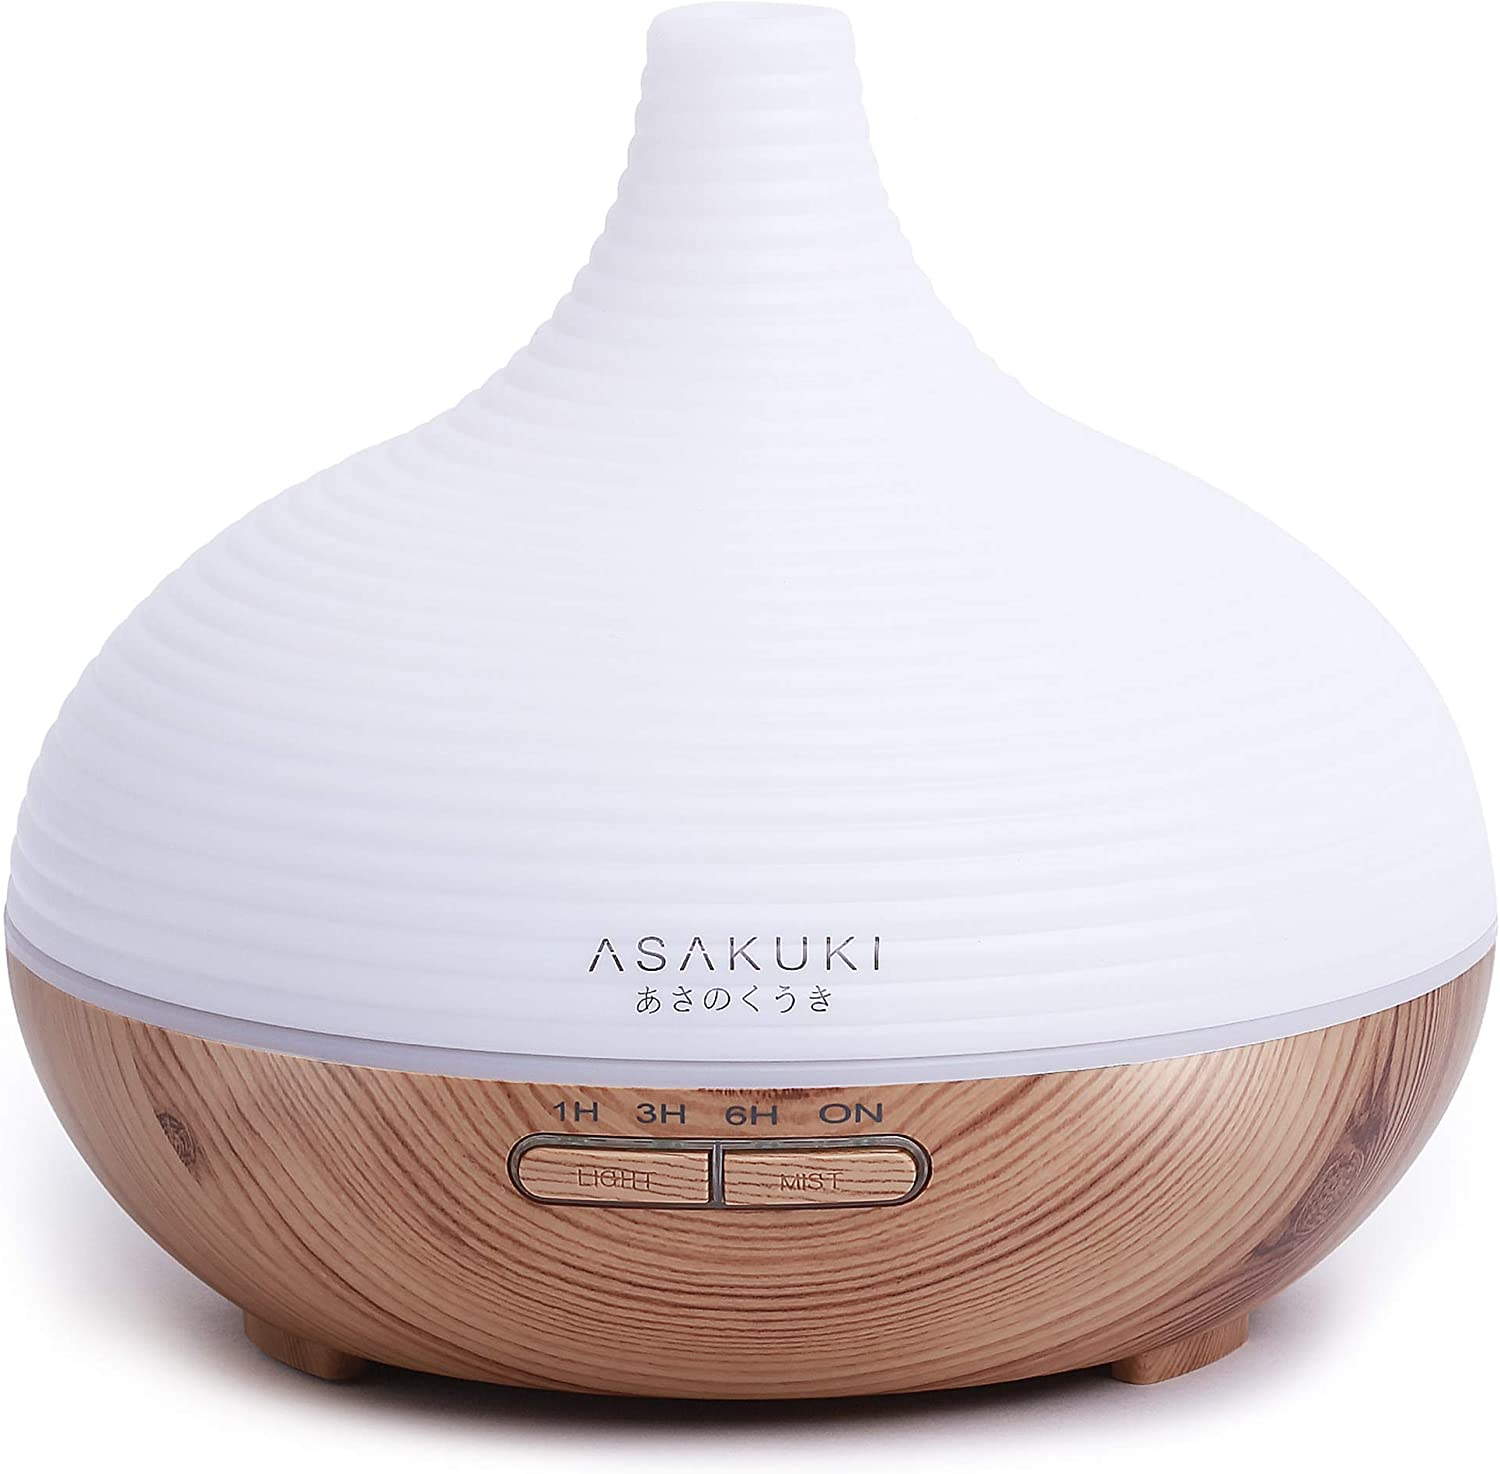 ASAKUKI 300ml Essential Oil Diffuser, Premium 5 In 1 Ultrasonic Aromatherapy Scented Oil Diffuser Vaporizer Humidifier, Timer and Waterless Auto Off,